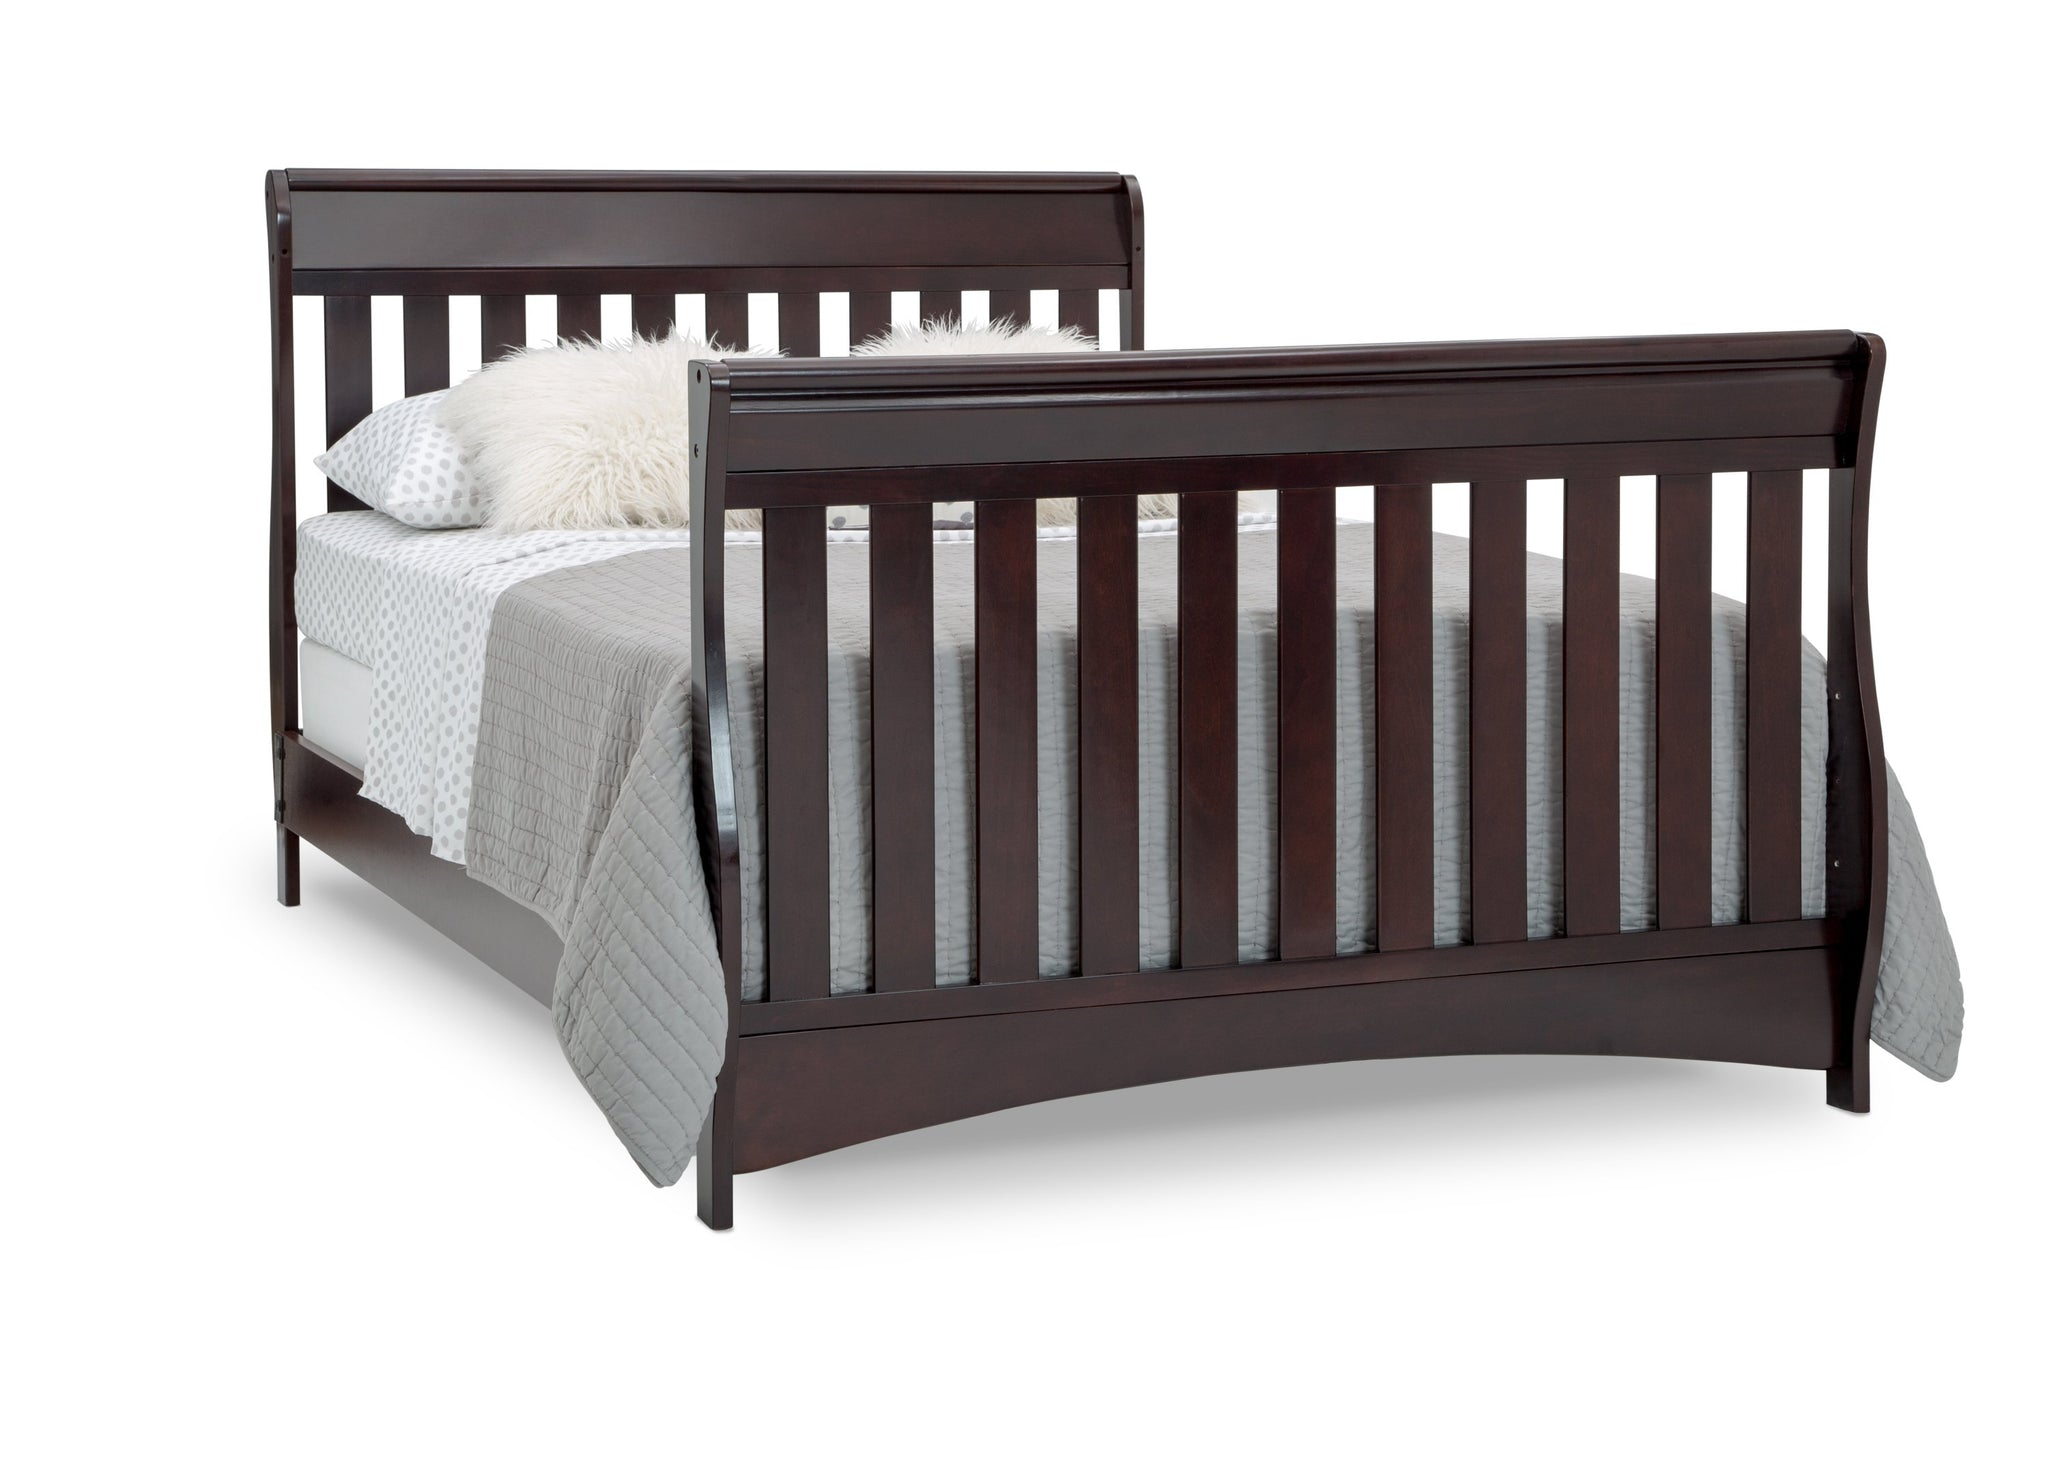 Delta Children Dark Chocolate (207) Bentley S Series Deluxe 6-in-1 Convertible Crib, Right Toddler Bed with Headboard and Footboard Silo View